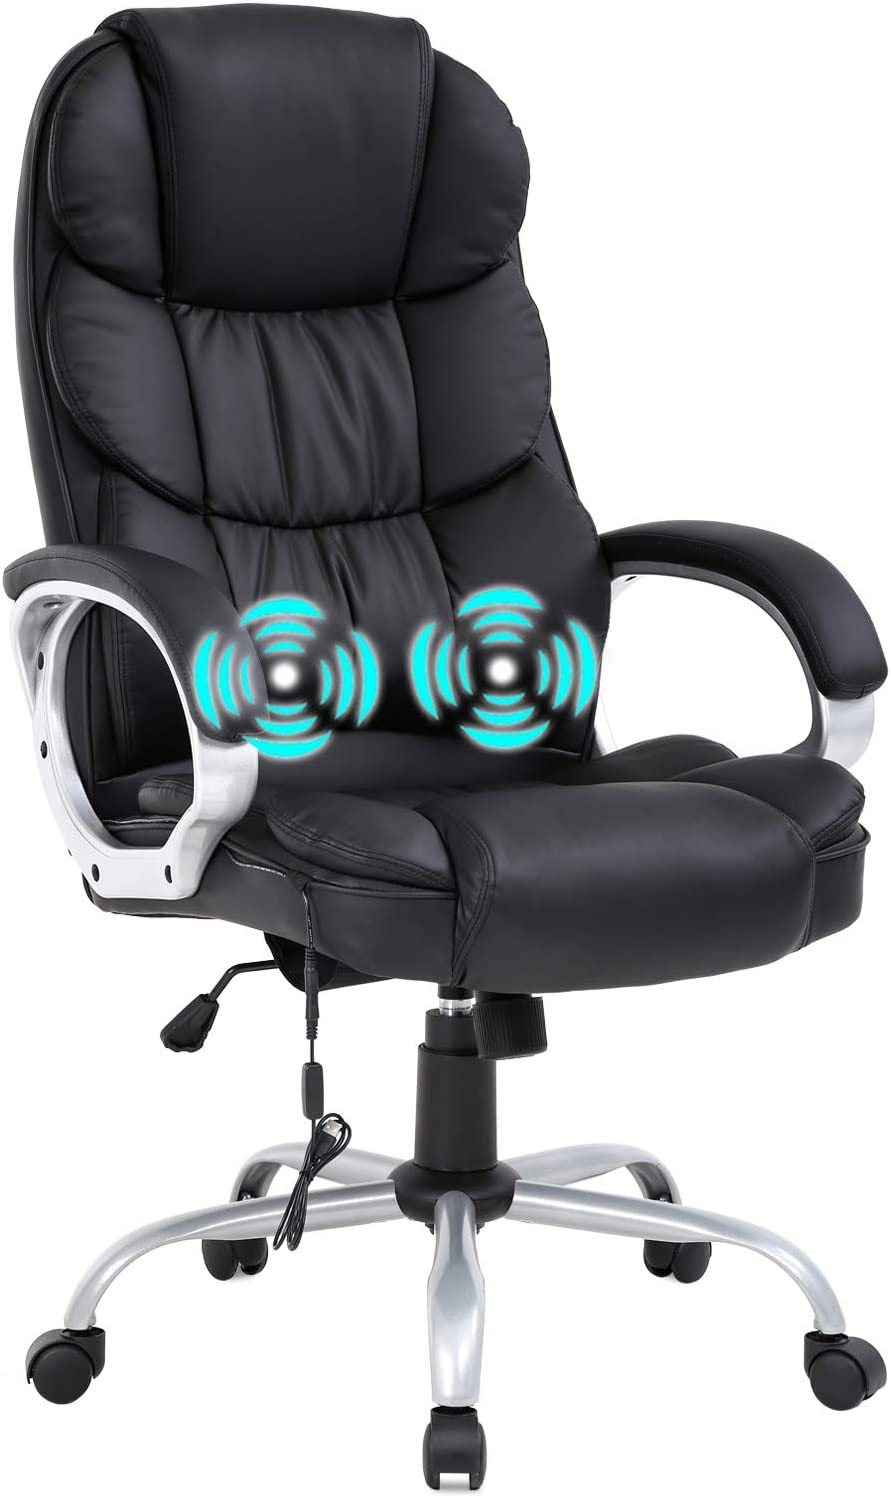 Home Office Chair Massage Desk Chair Ergonomic Computer Chair with Lumbar Support Headrest Armrest High Back Task Chair Rolling Swivel PU Leather Executive Chair for Women Adults, Black: Furniture & Decor